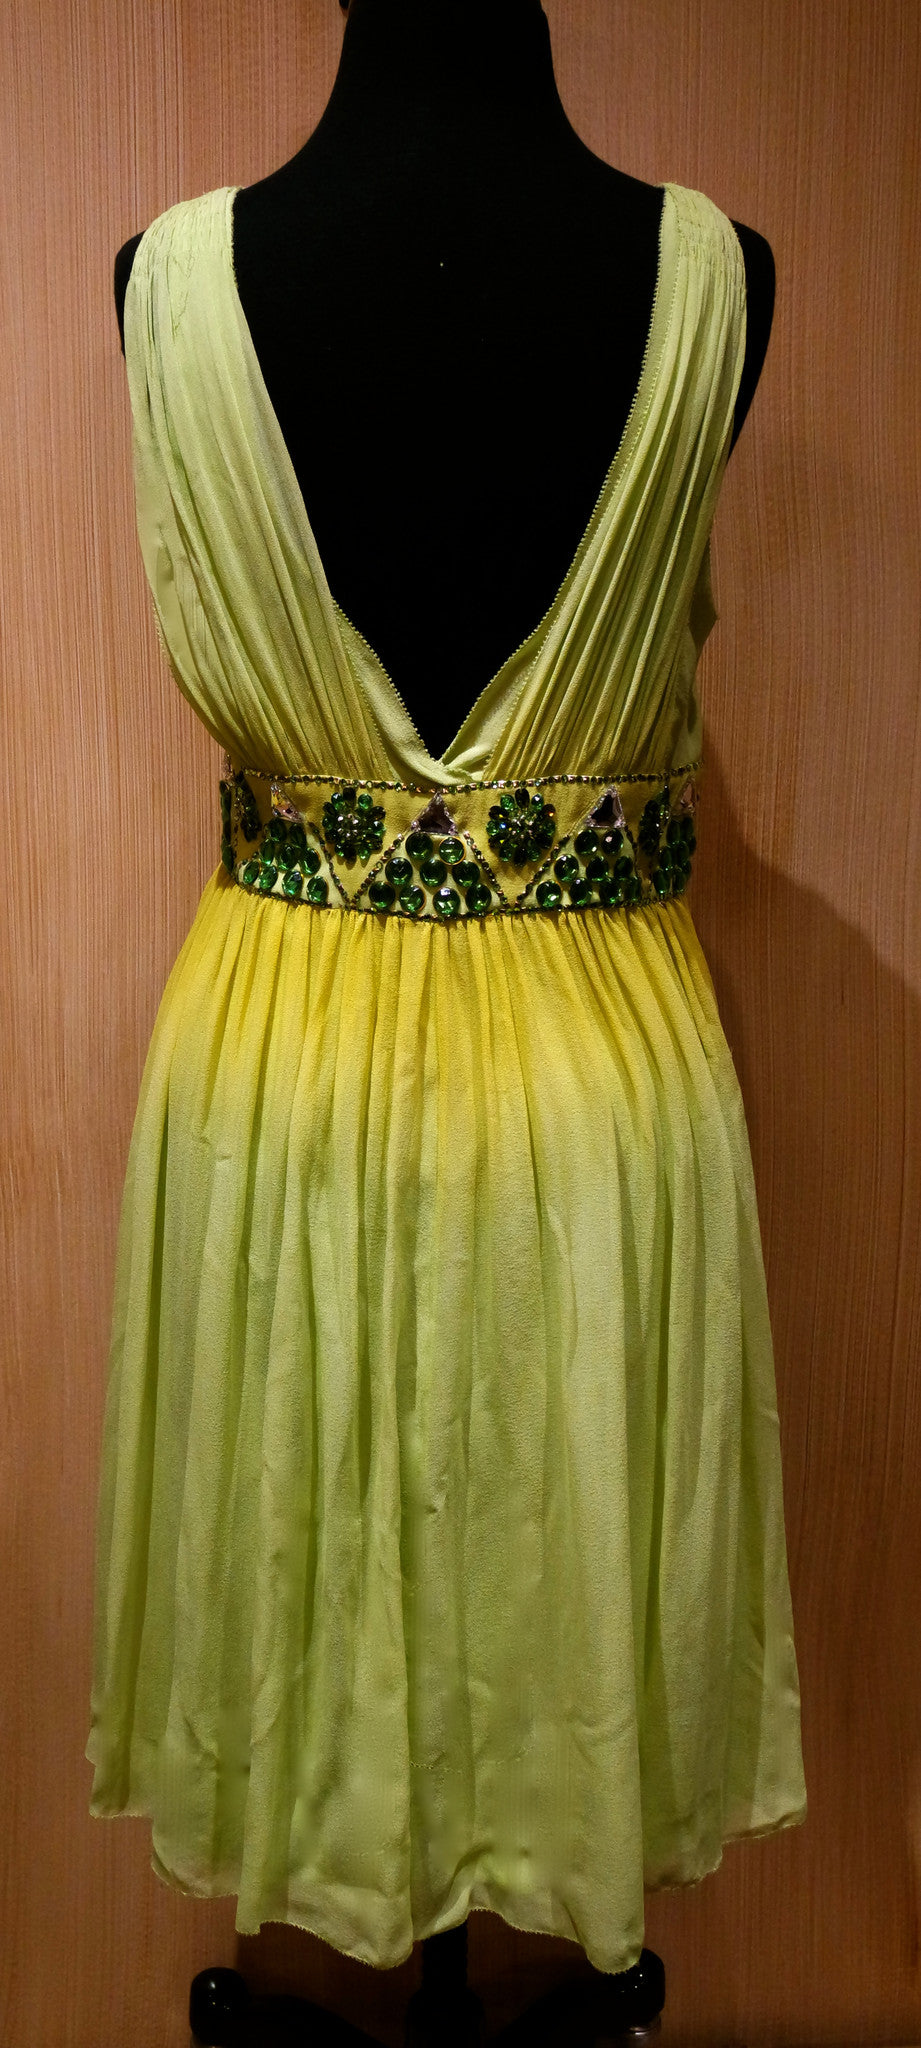 Jenny Packham Jeweled Lime Ombre Silk Chiffon and Jeweled Dress